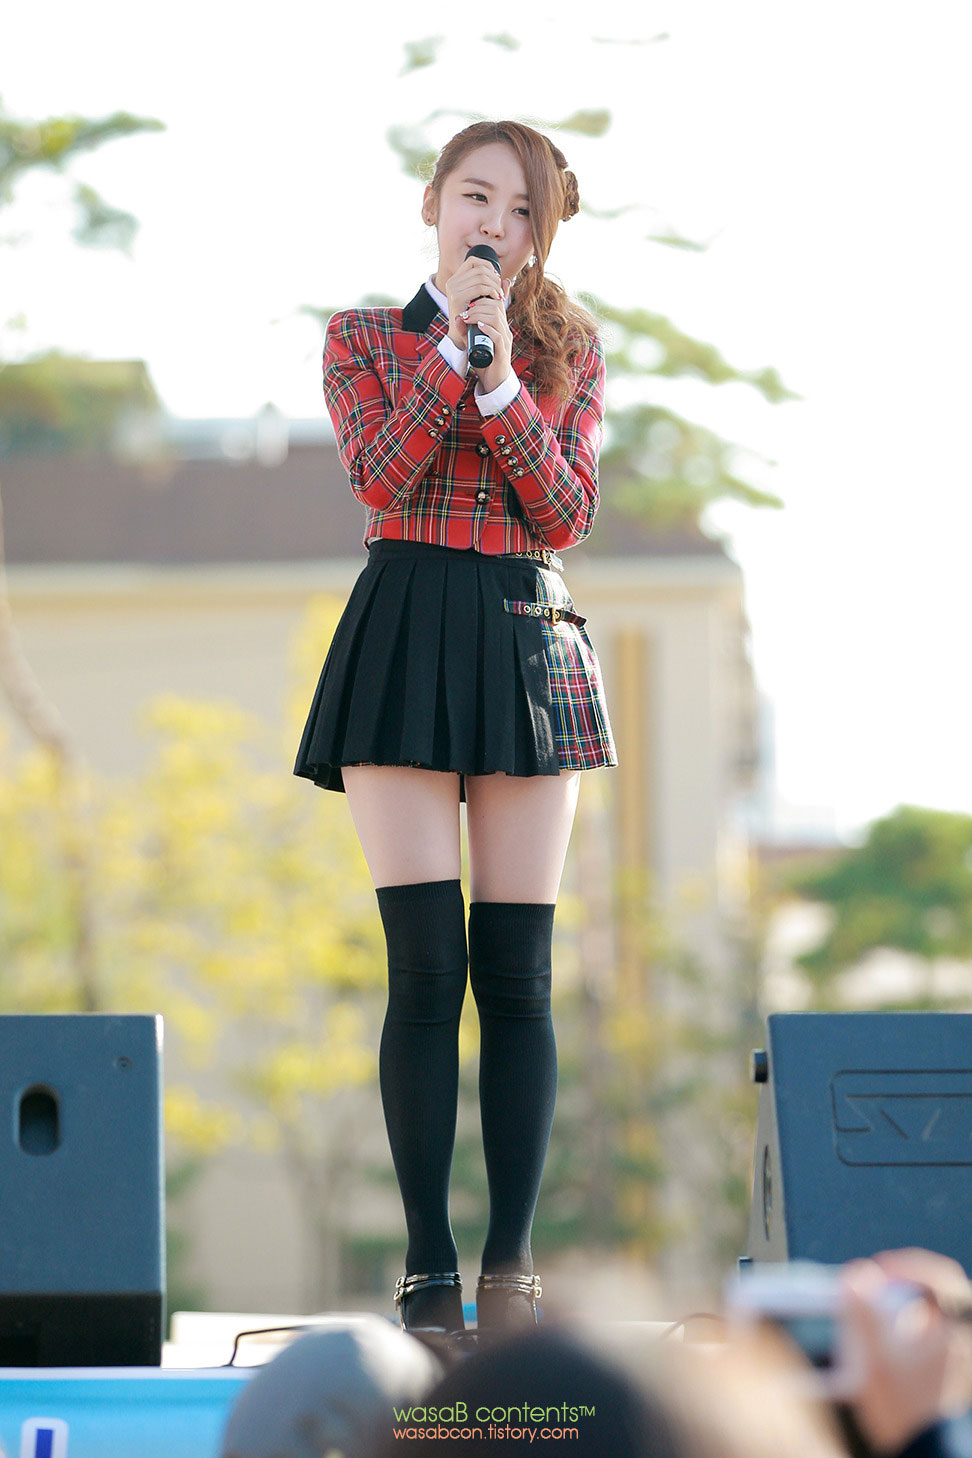 nca kpop singer - photo #29